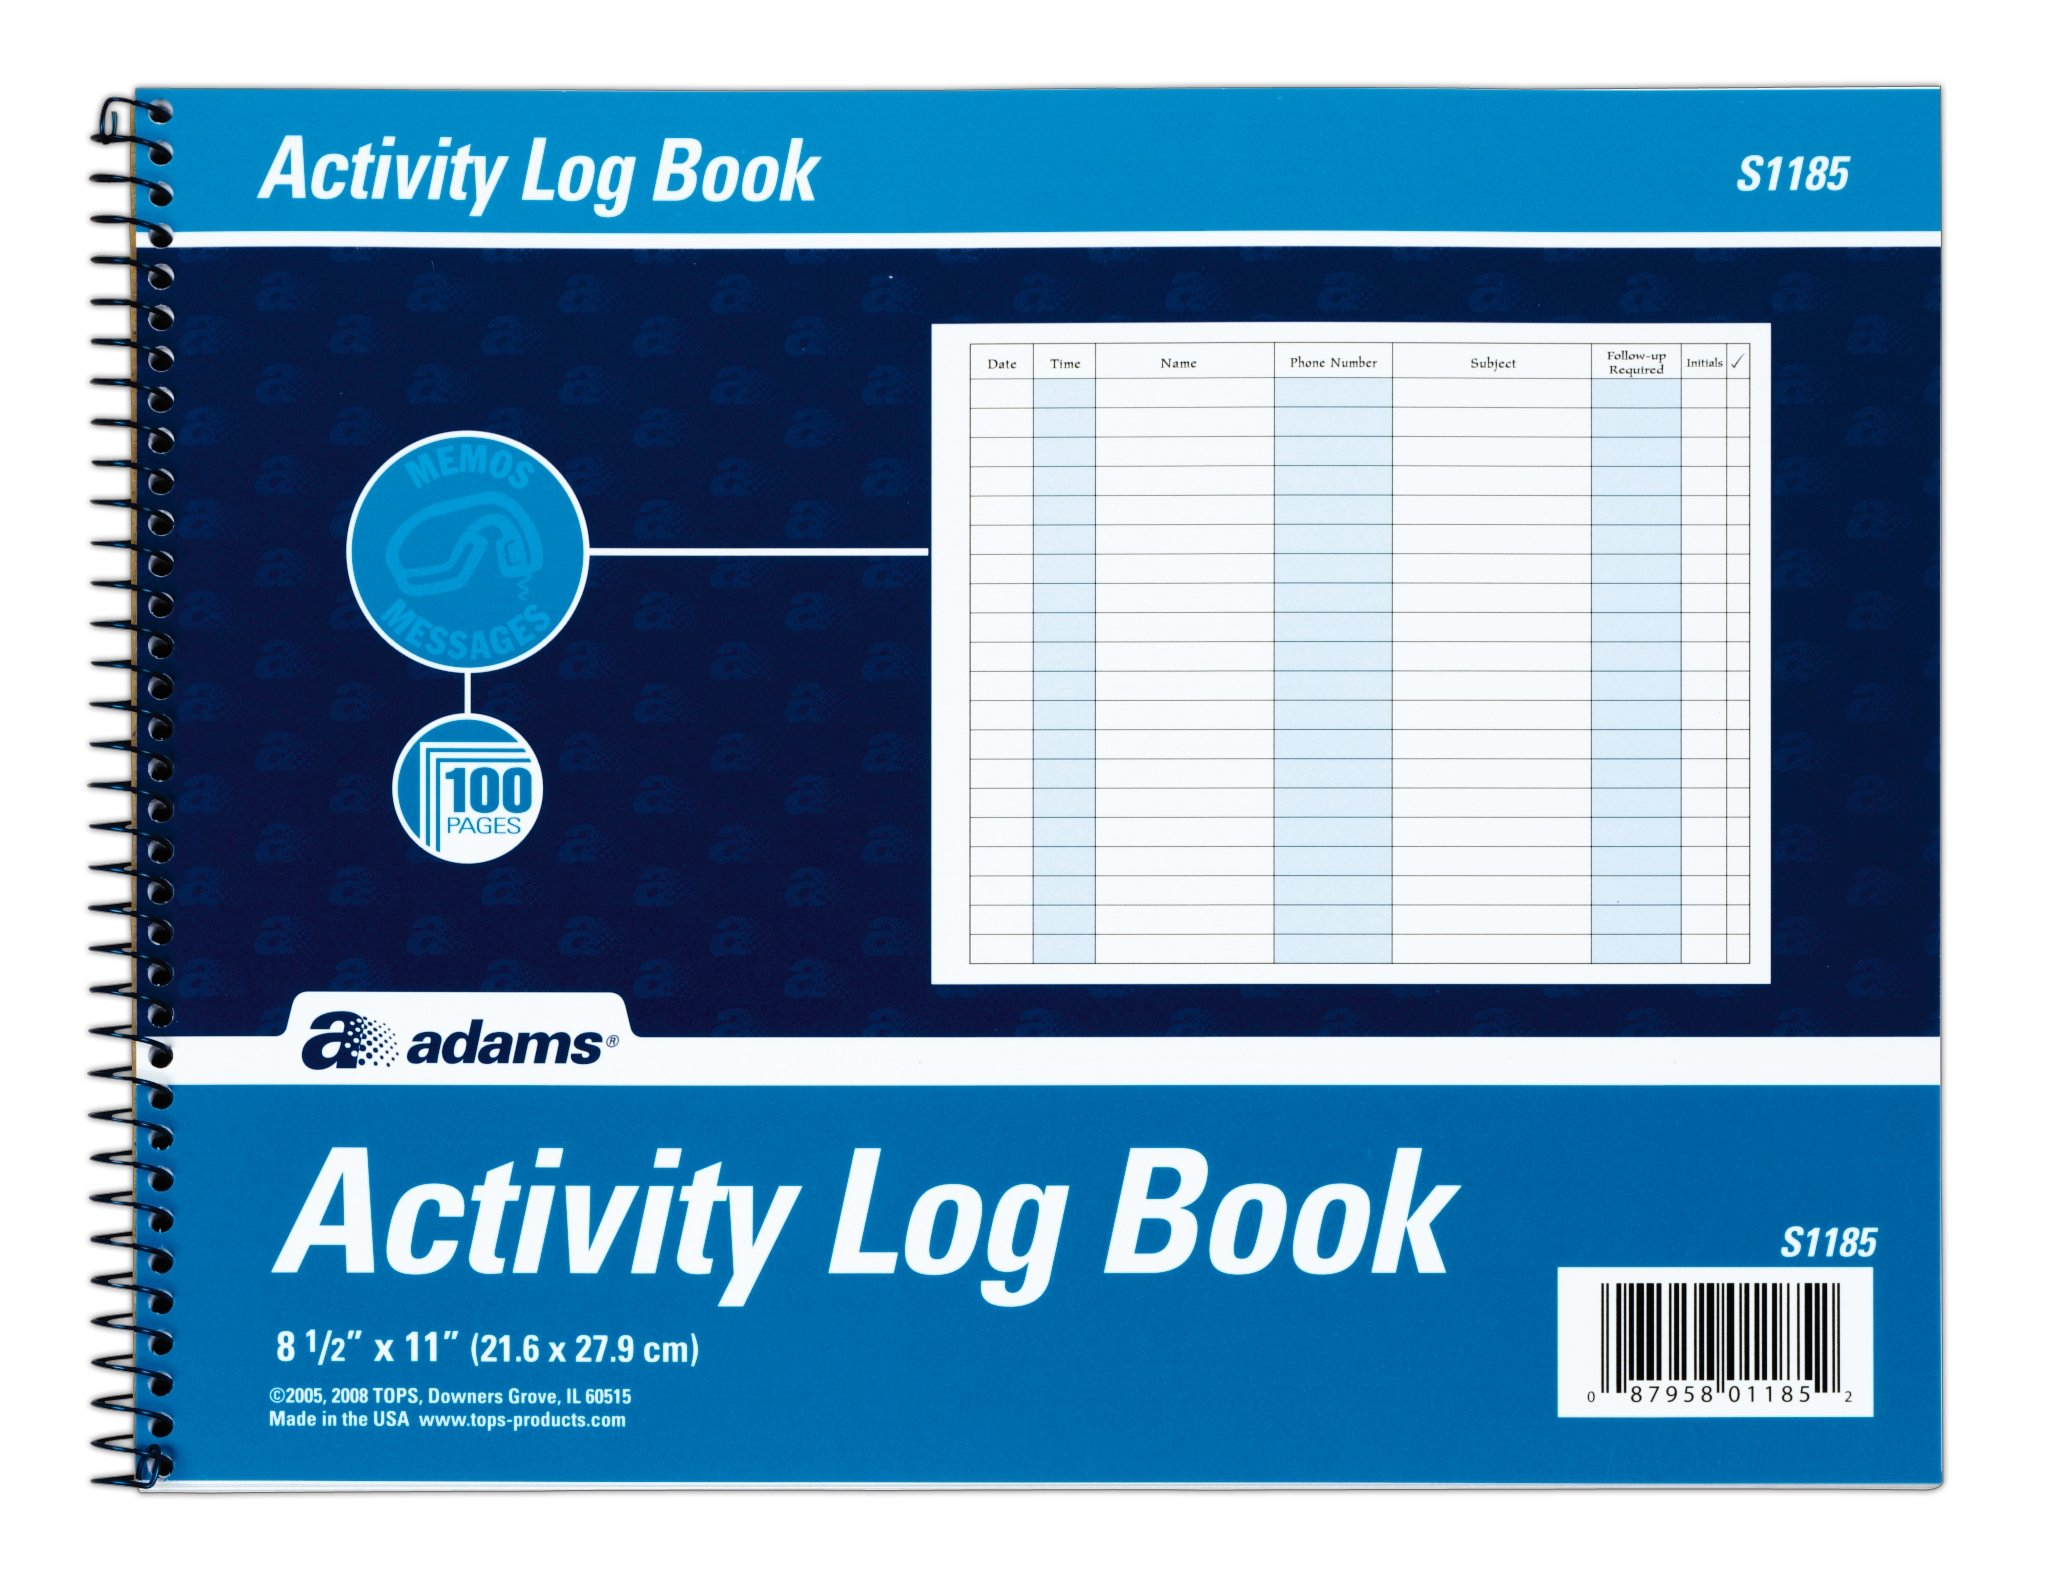 Adams Activity Log Book, Spiral Bound, 8.5 x 11 Inches, 100 Pages, White (S1185ABF) by Adams